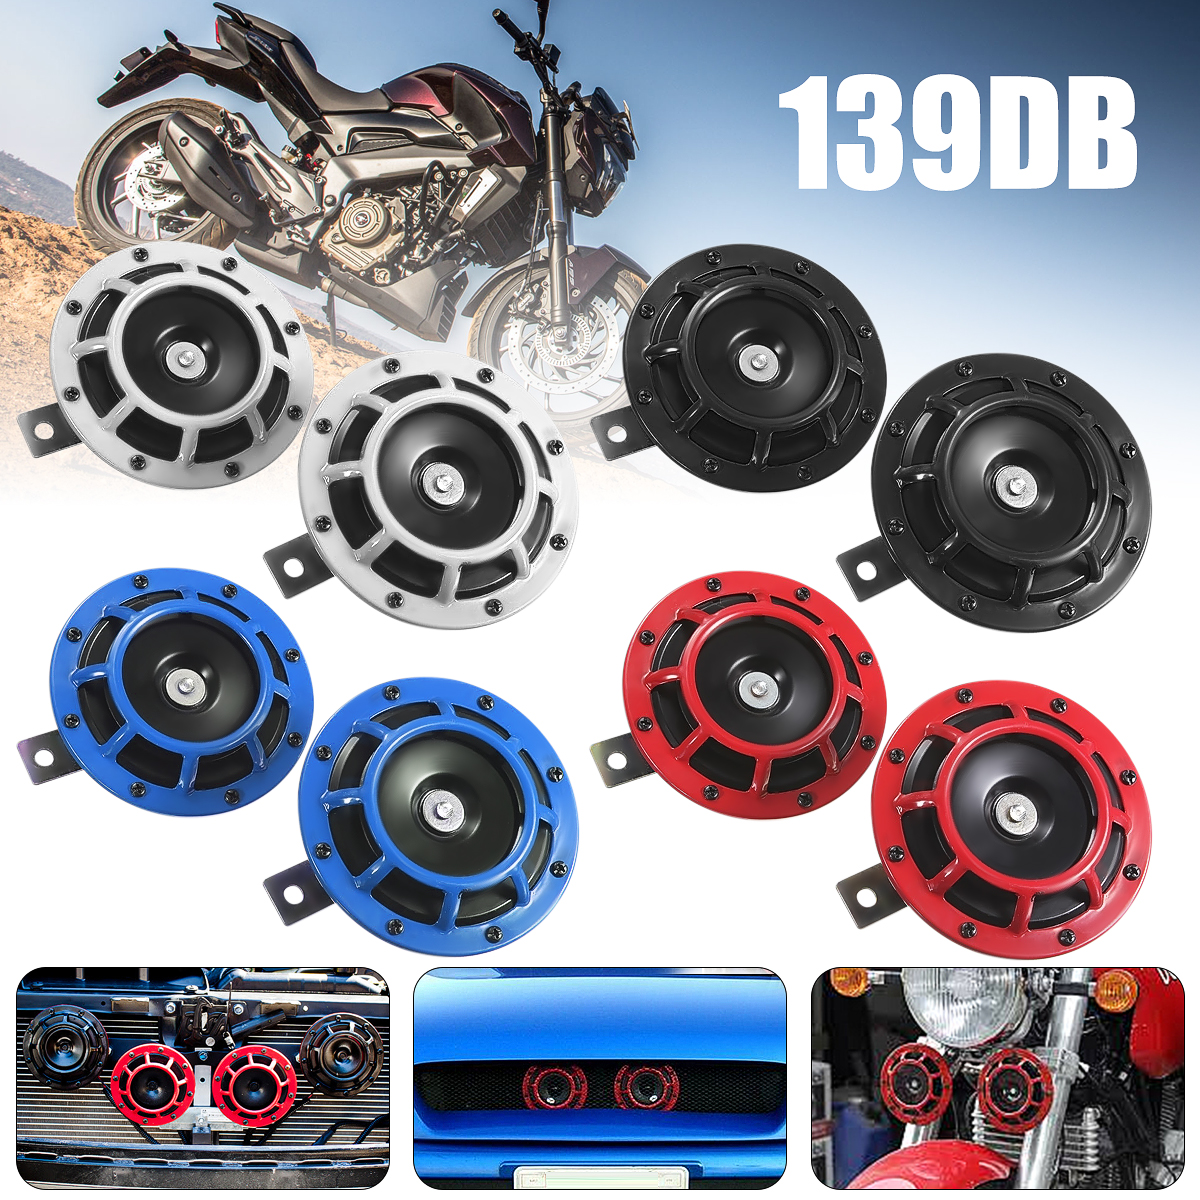 Universal Motorcycle Car Siren Dual Tone Electric Pump Loud Air Horn 12V 139db Off-road Super Loud Compact Electric Blast Tone modified motorcycle accessories refires horn trolley belt oil pump cnc general horn refires